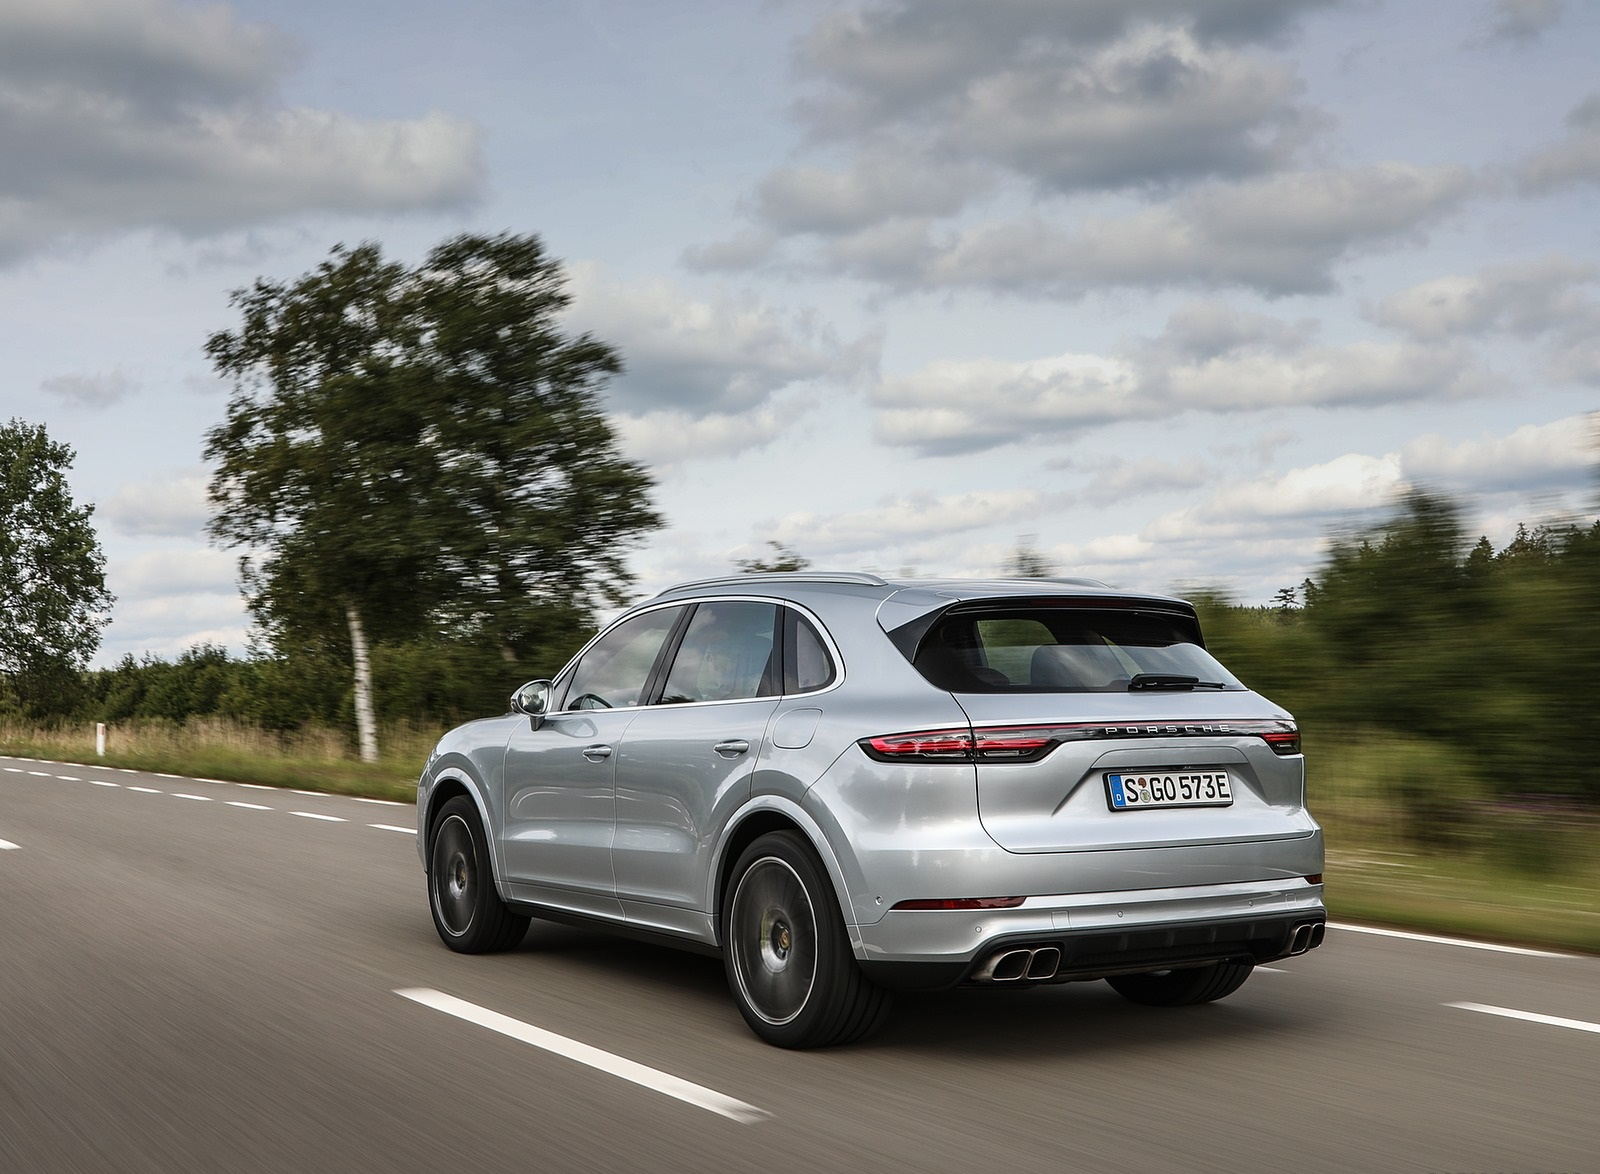 2020 Porsche Cayenne Turbo S E-Hybrid Rear Three-Quarter Wallpapers (7)